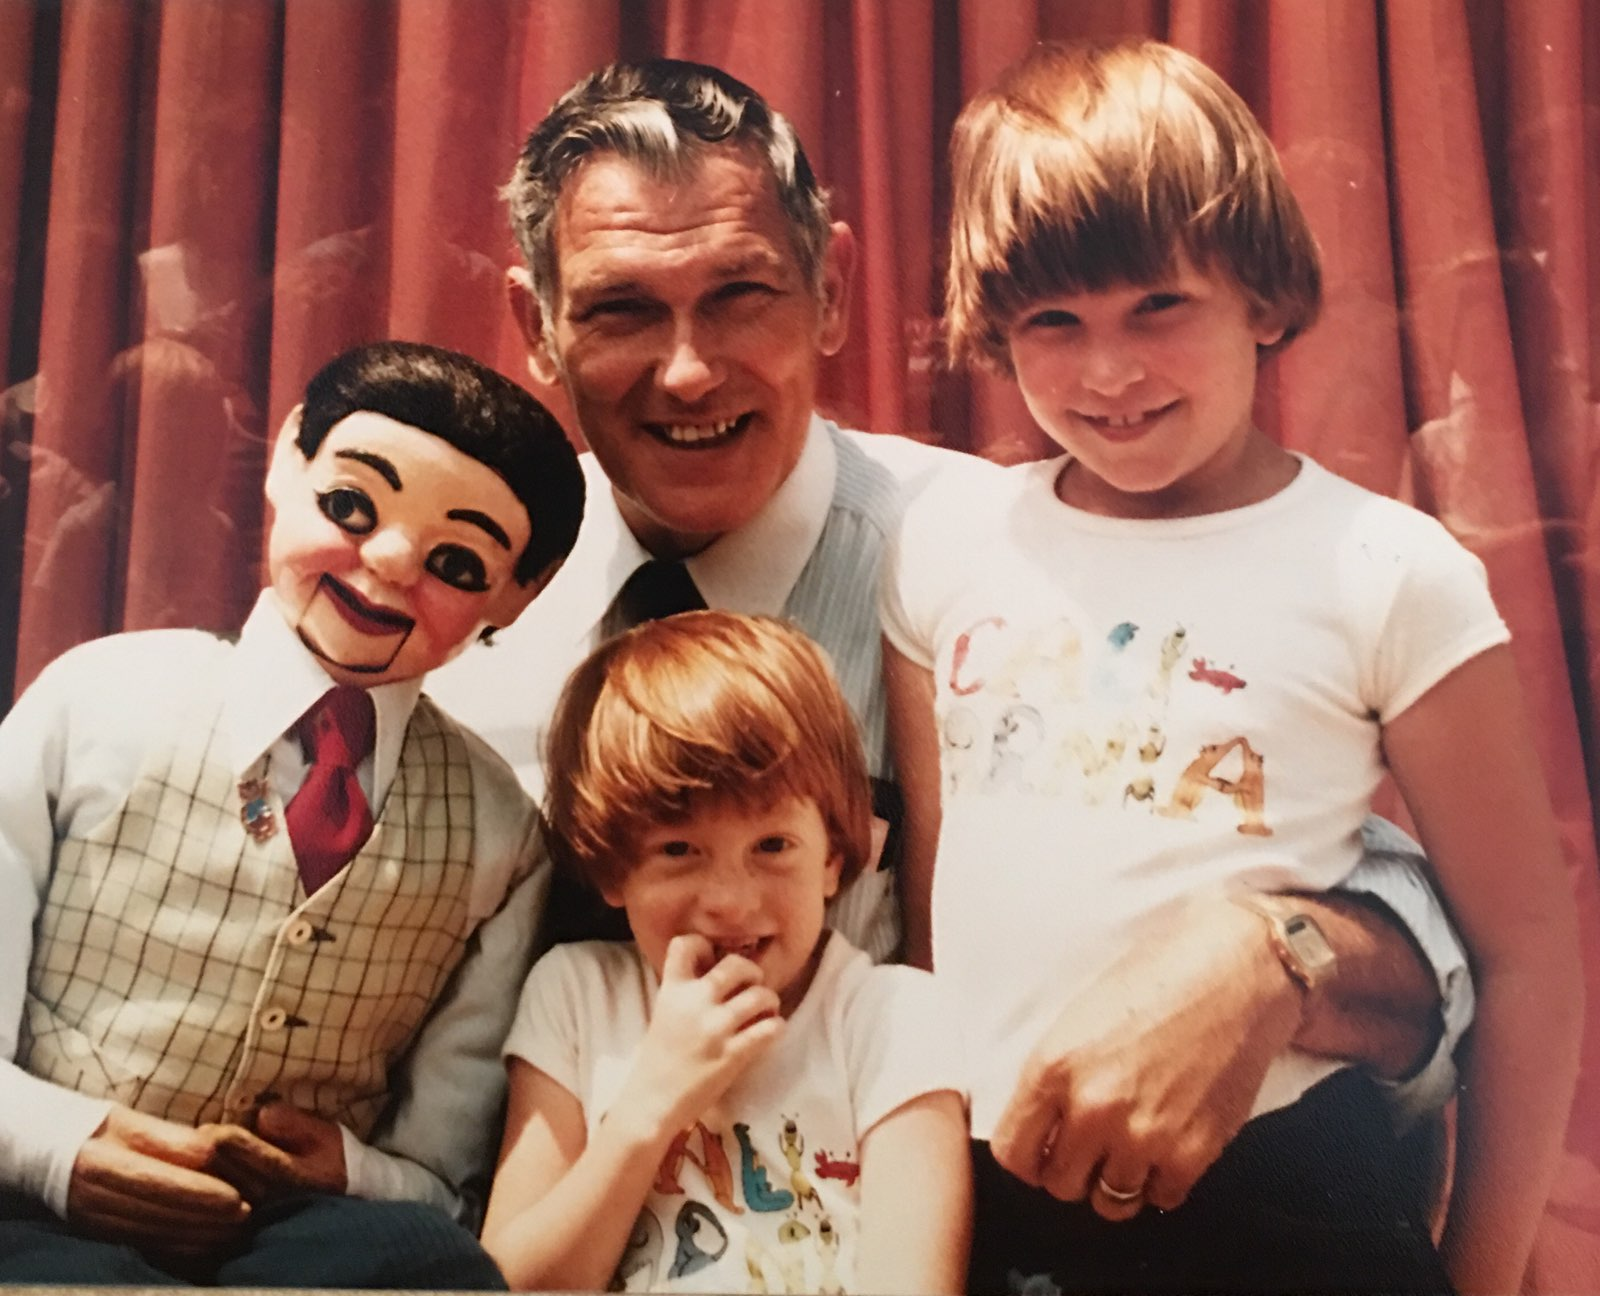 my sister and I with Frank Buckley and his puppet, Daniel. Frank ran the kids program at the conference we went to as kids.